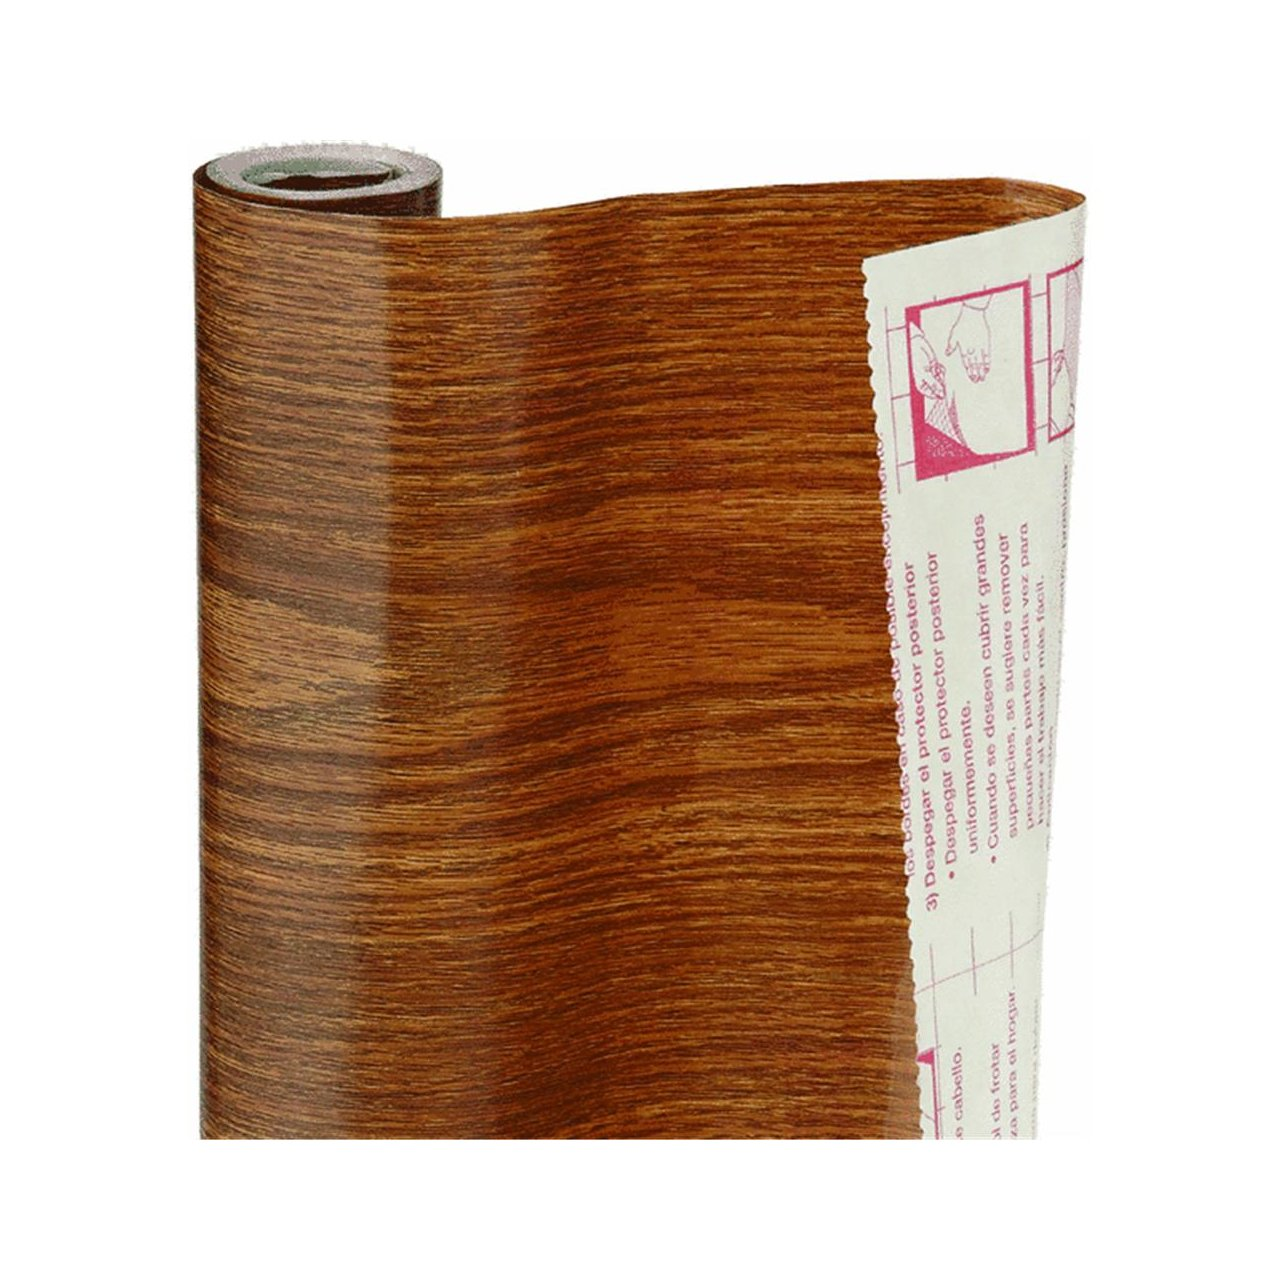 Uncategorized Contact Paper That Looks Like Wood amazon com ultra honey oak adhesive contact paper multipurpose paper